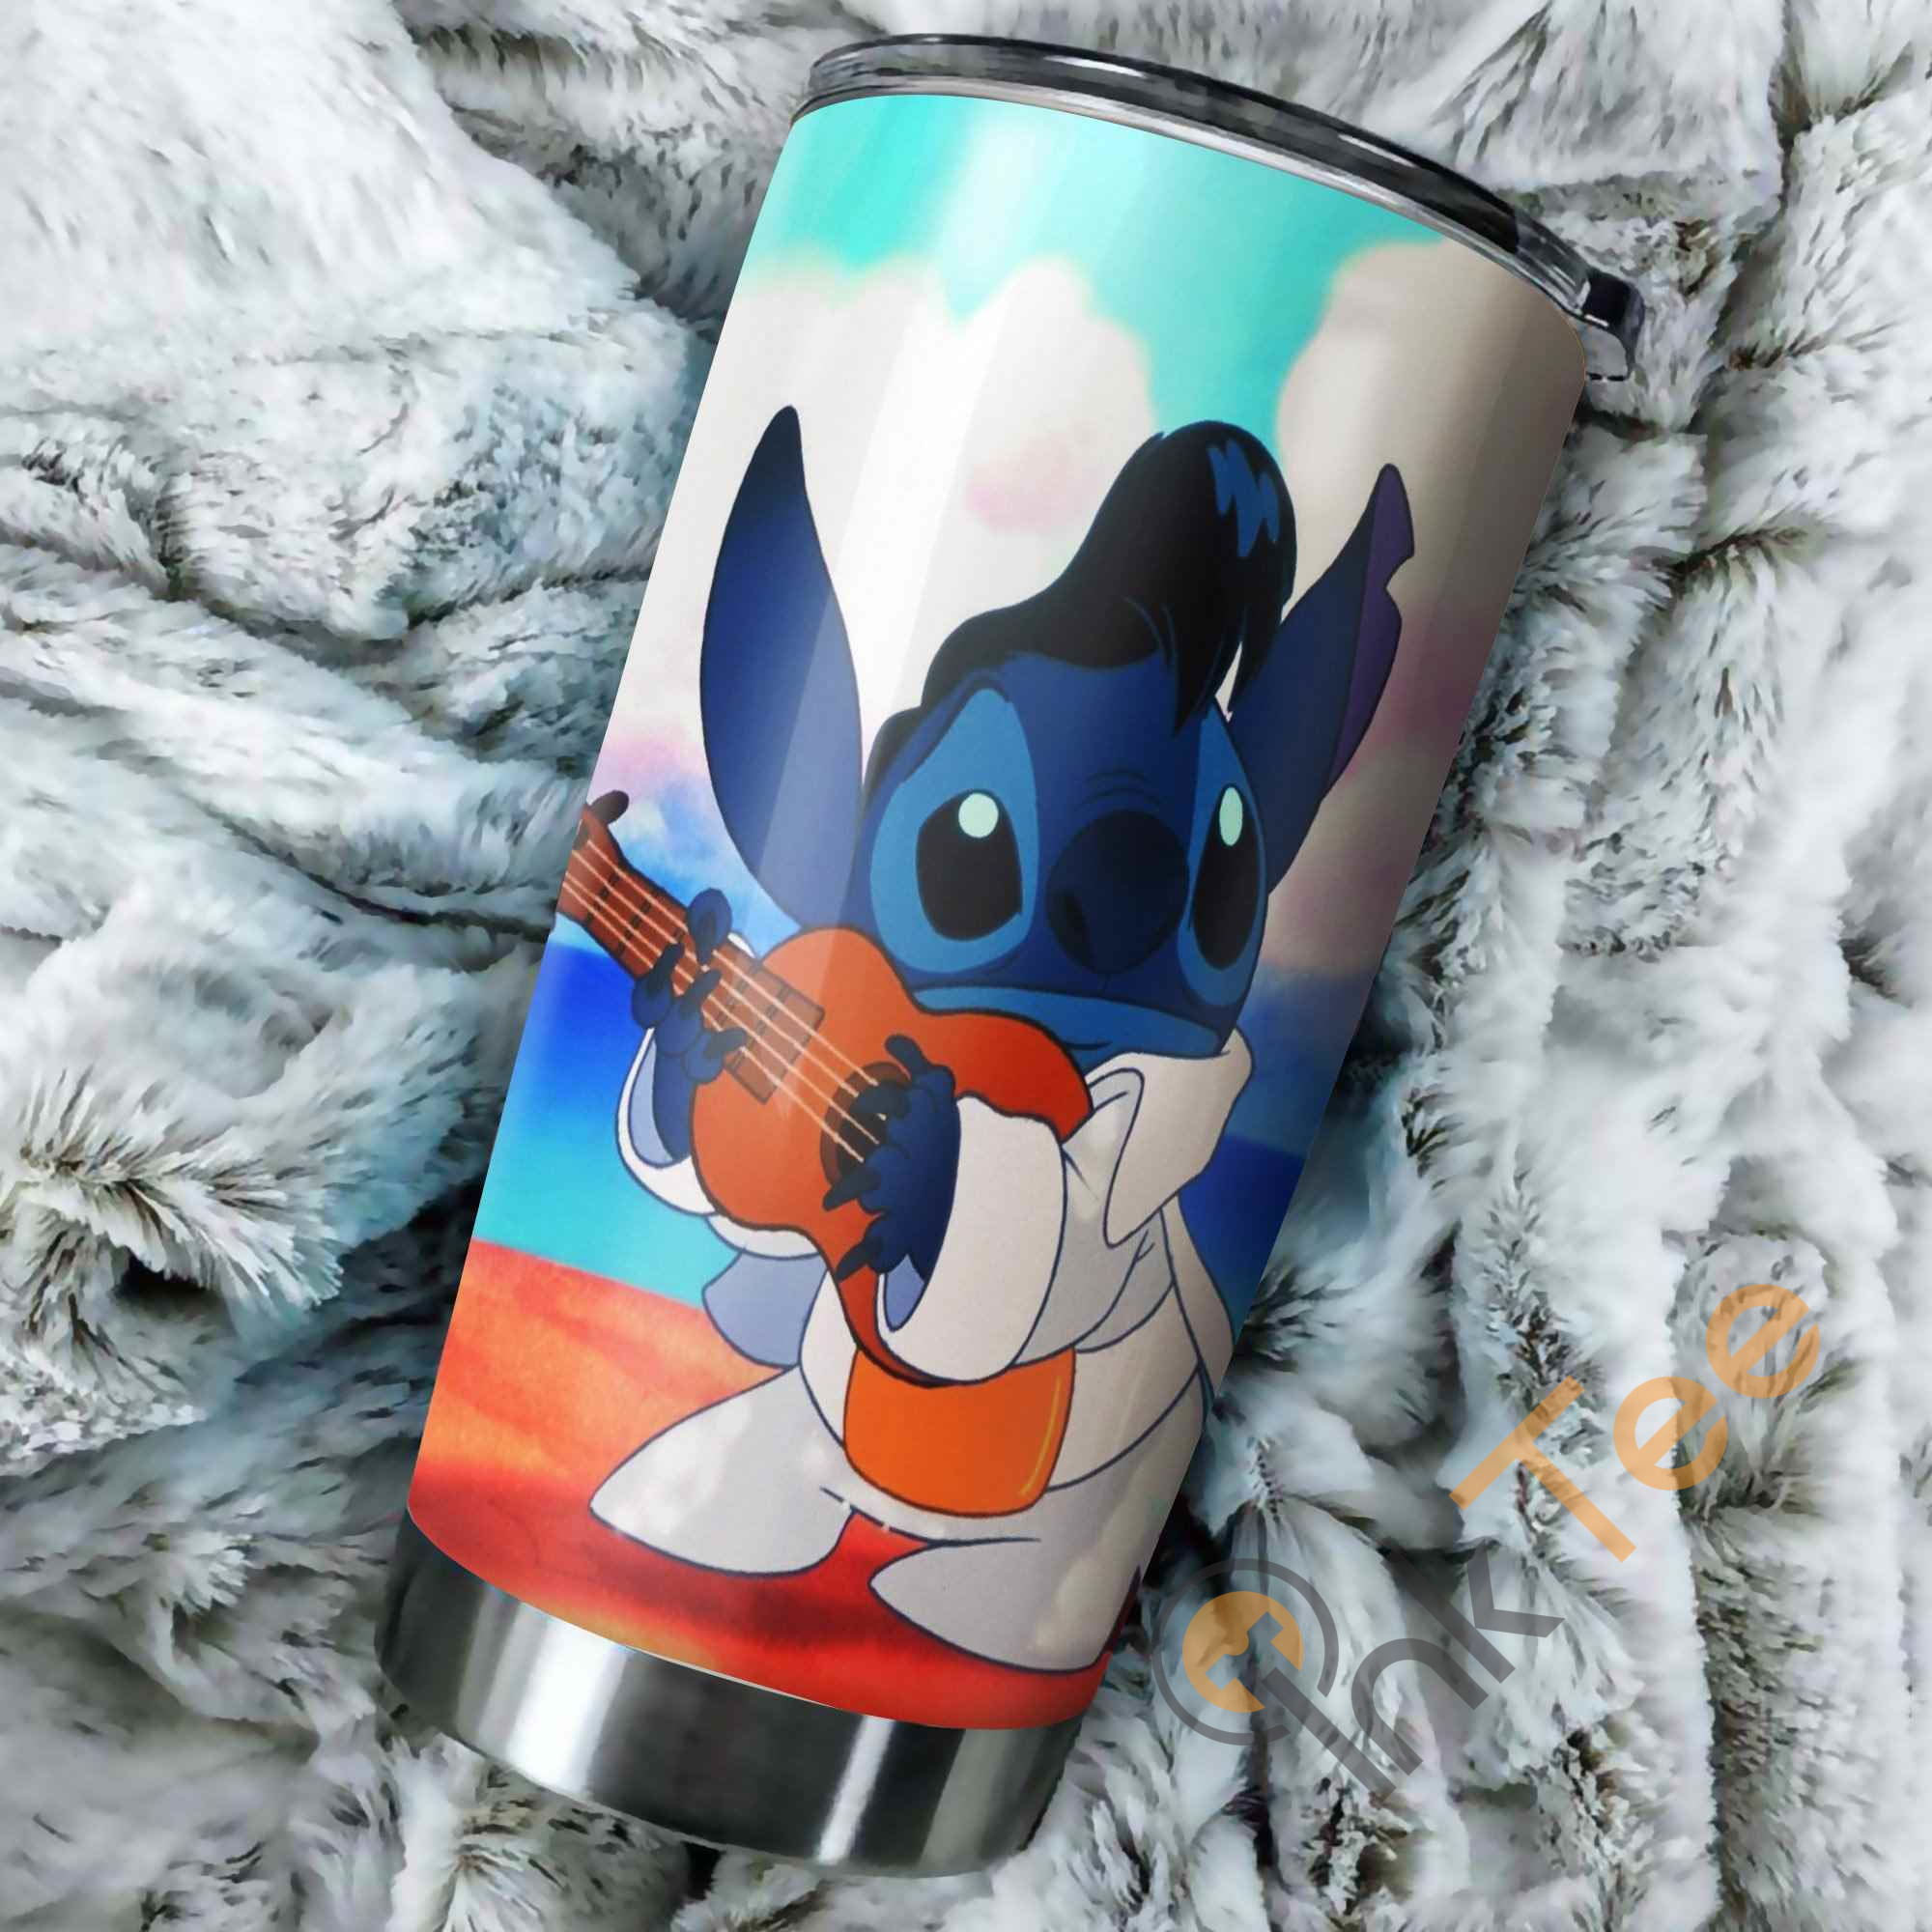 Stitch Elvis Presley Perfect Gift Stainless Steel Tumbler